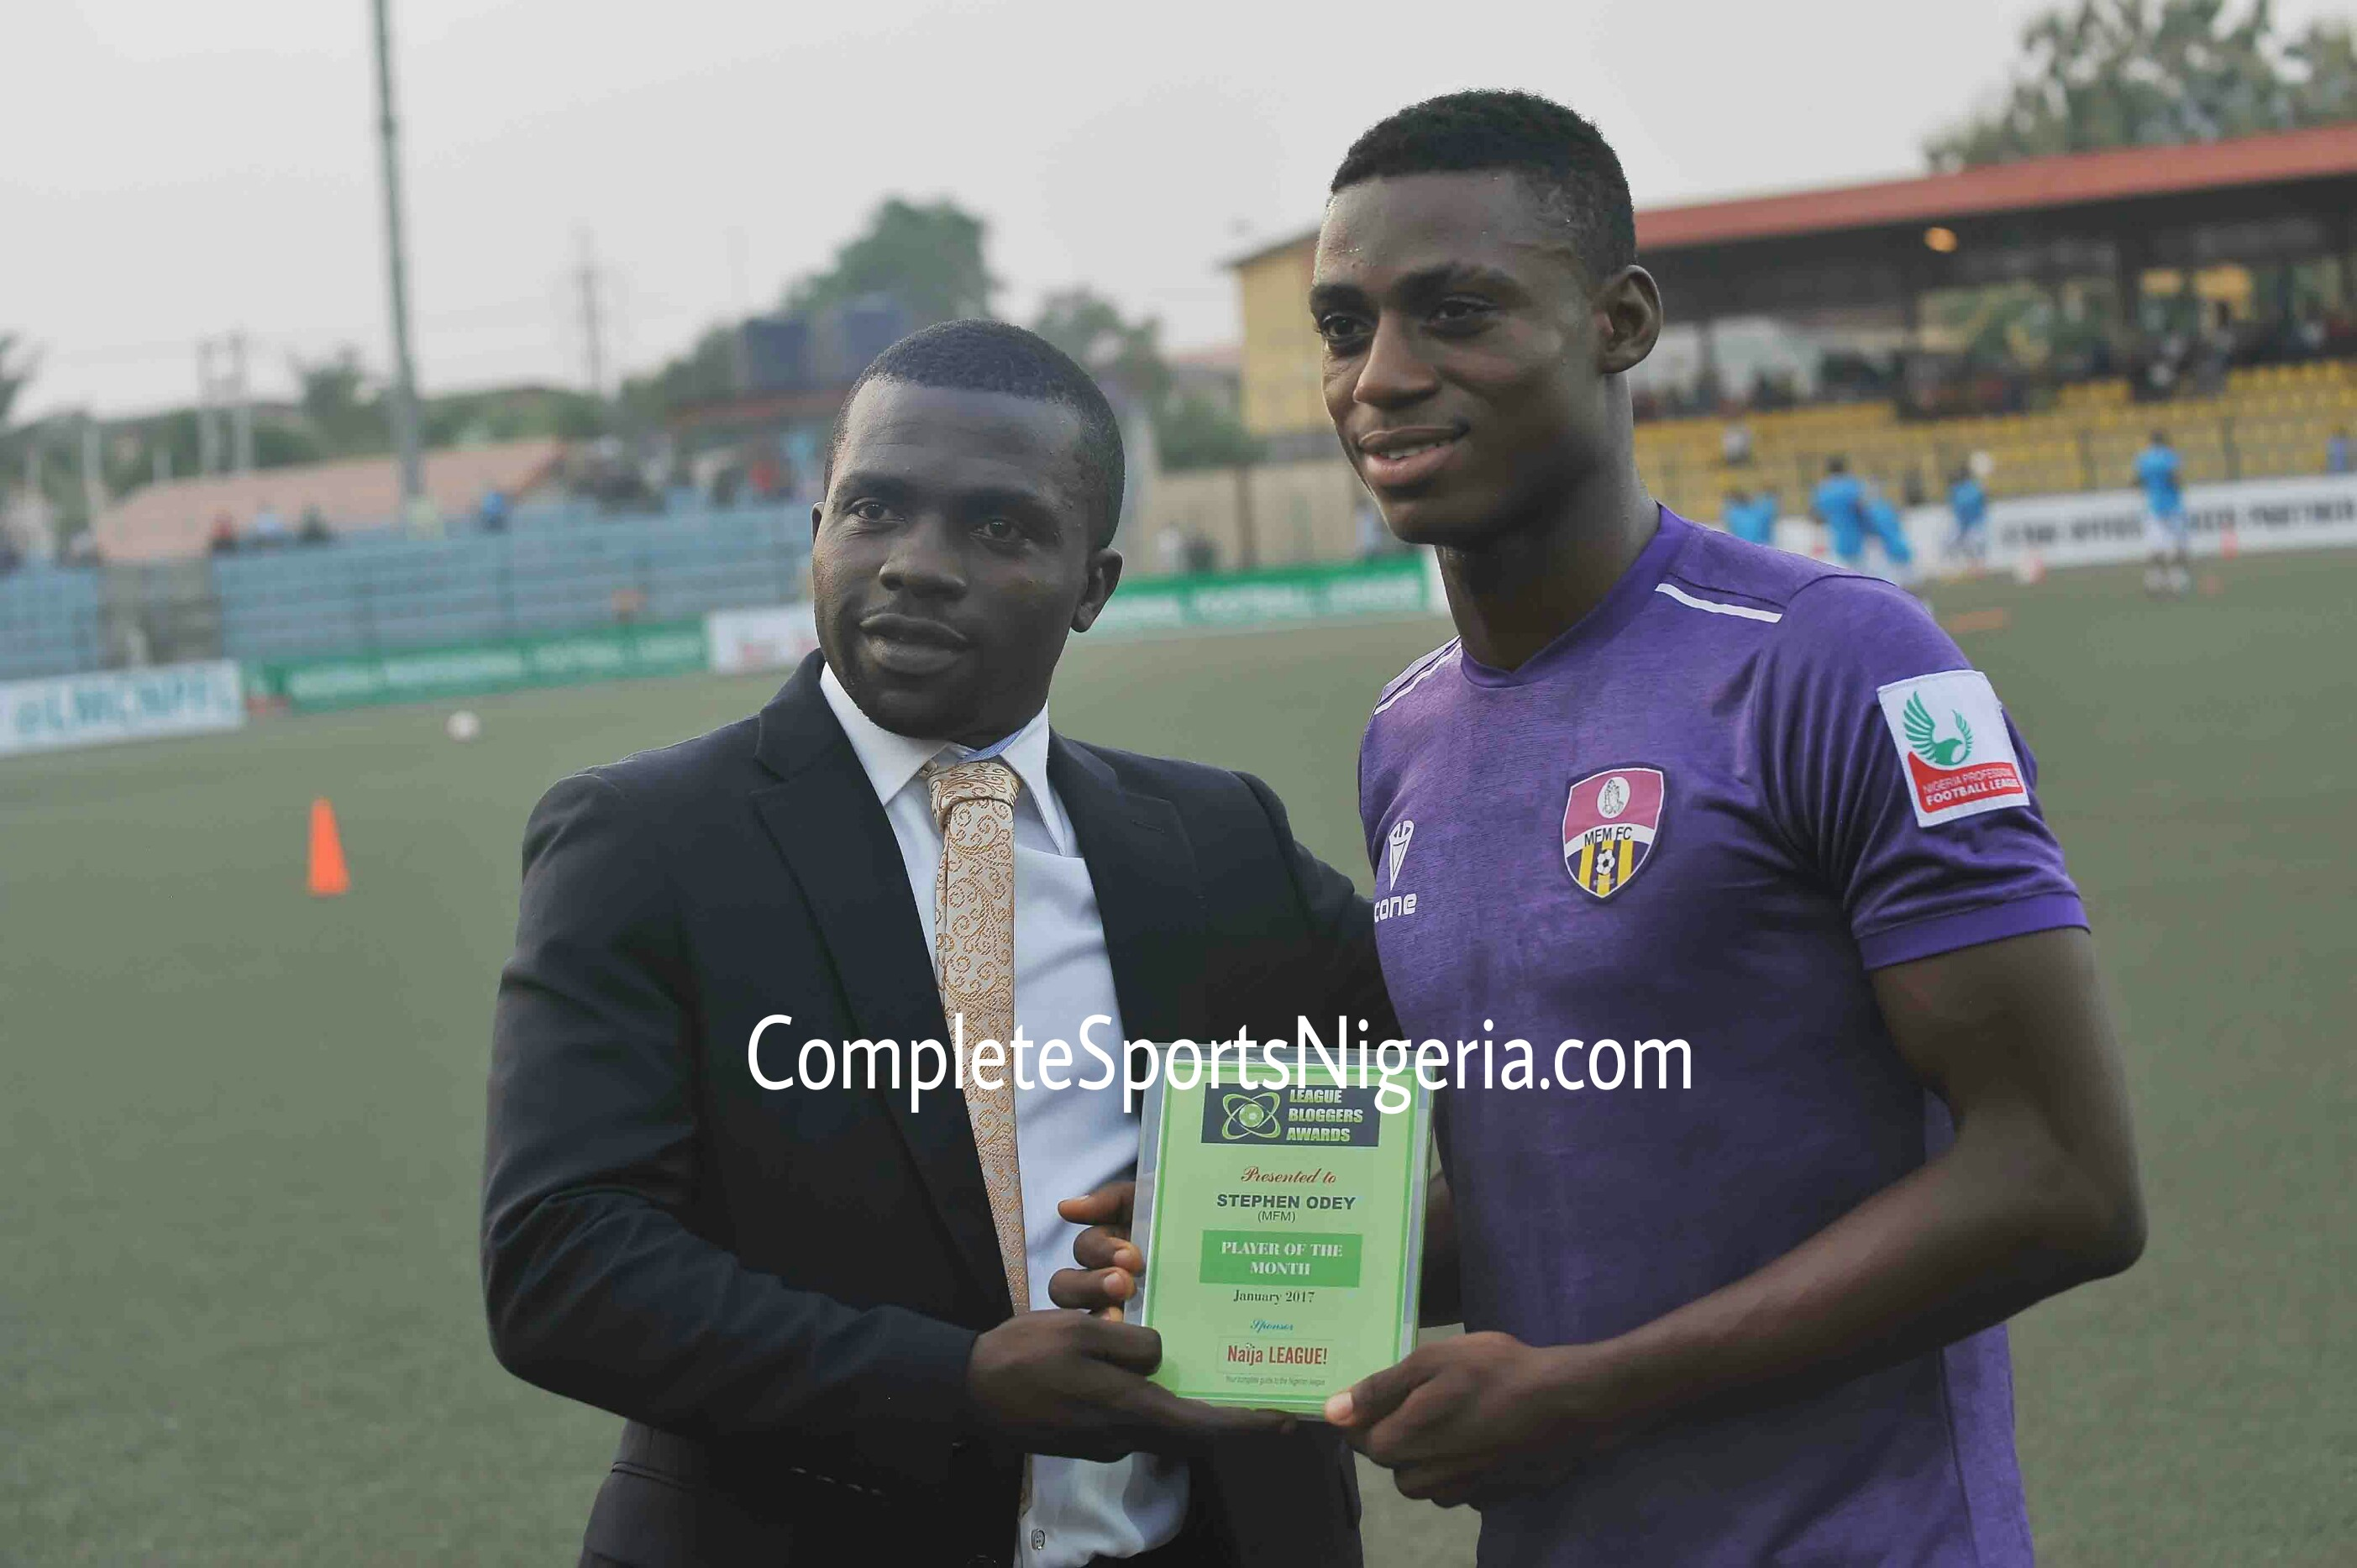 Odey: I want To Become NPFL's All-Time Top Scorer